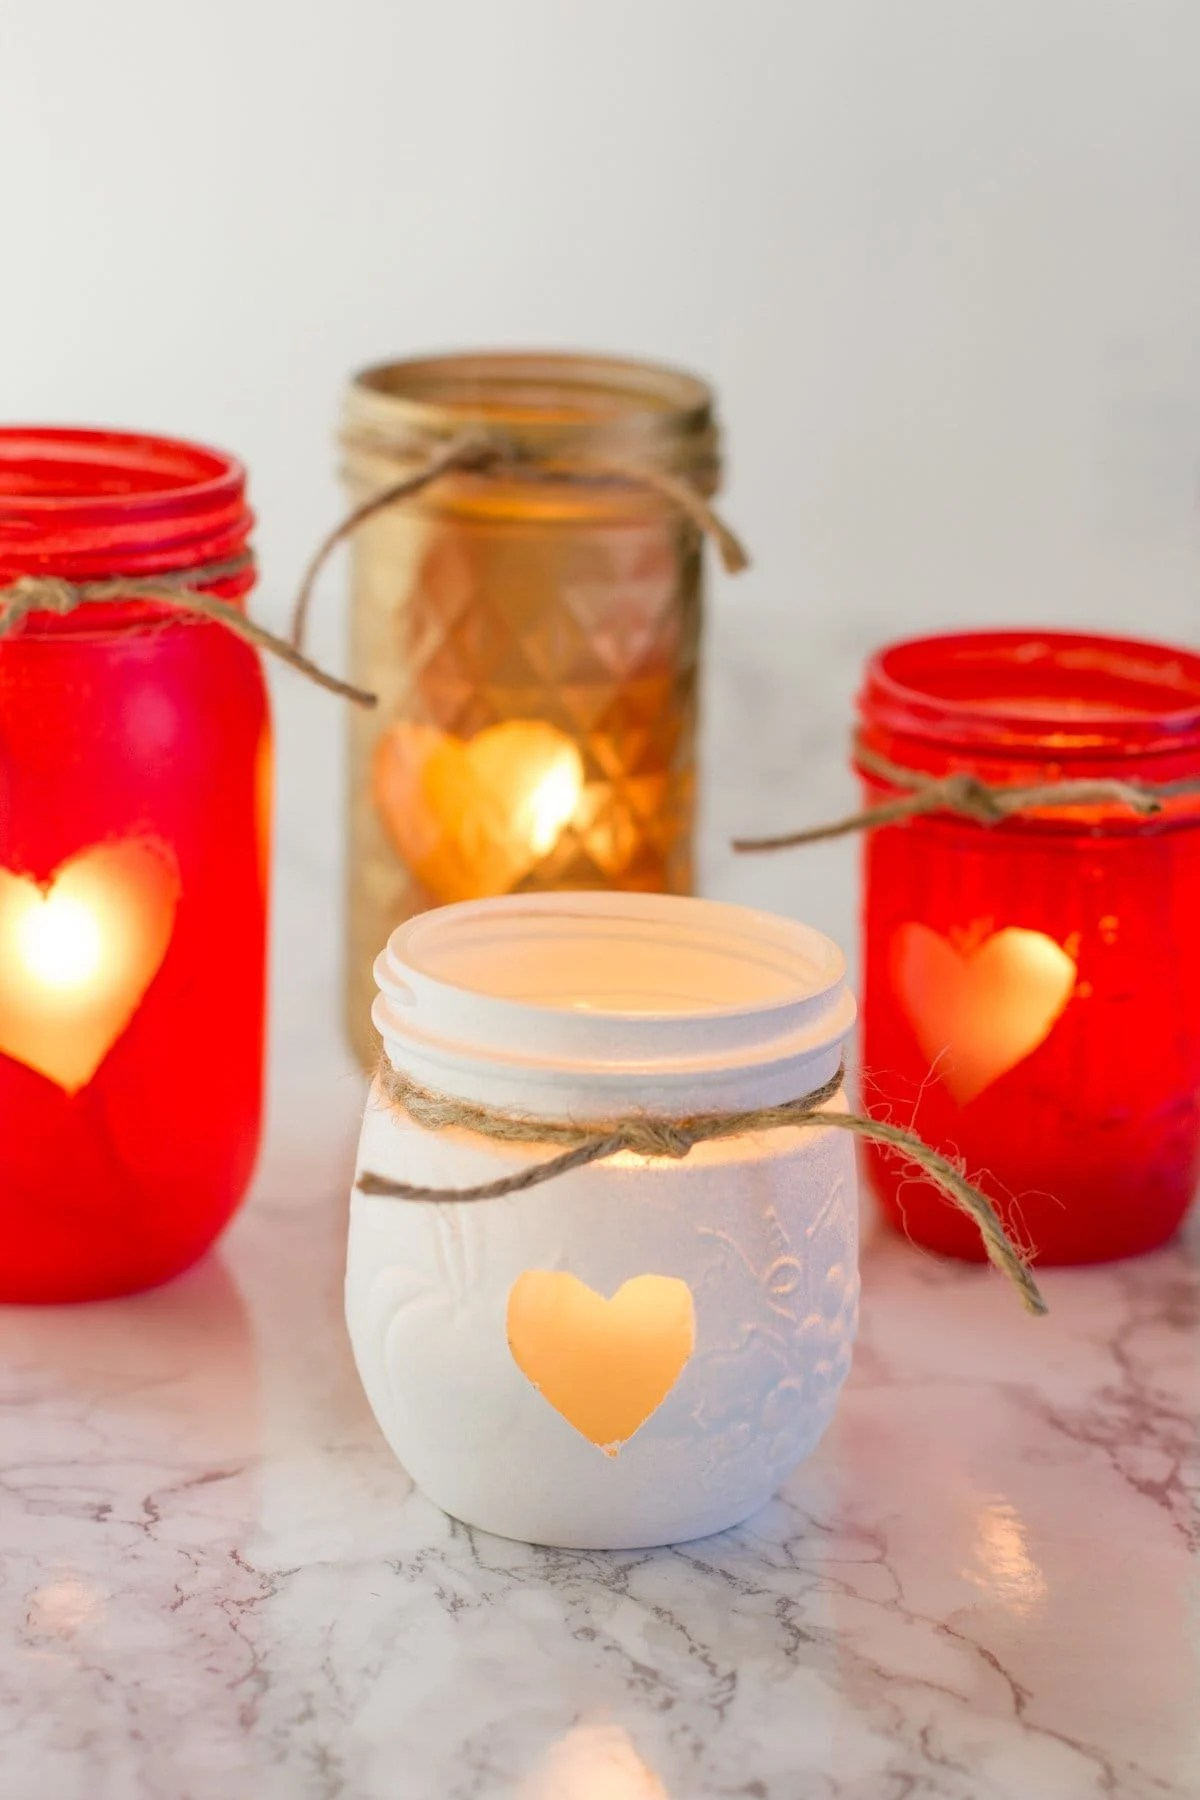 Cluster of Painted Mason Jar Votive Holders, each with a heart and a piece of twine. The jars are gold, red, and white.